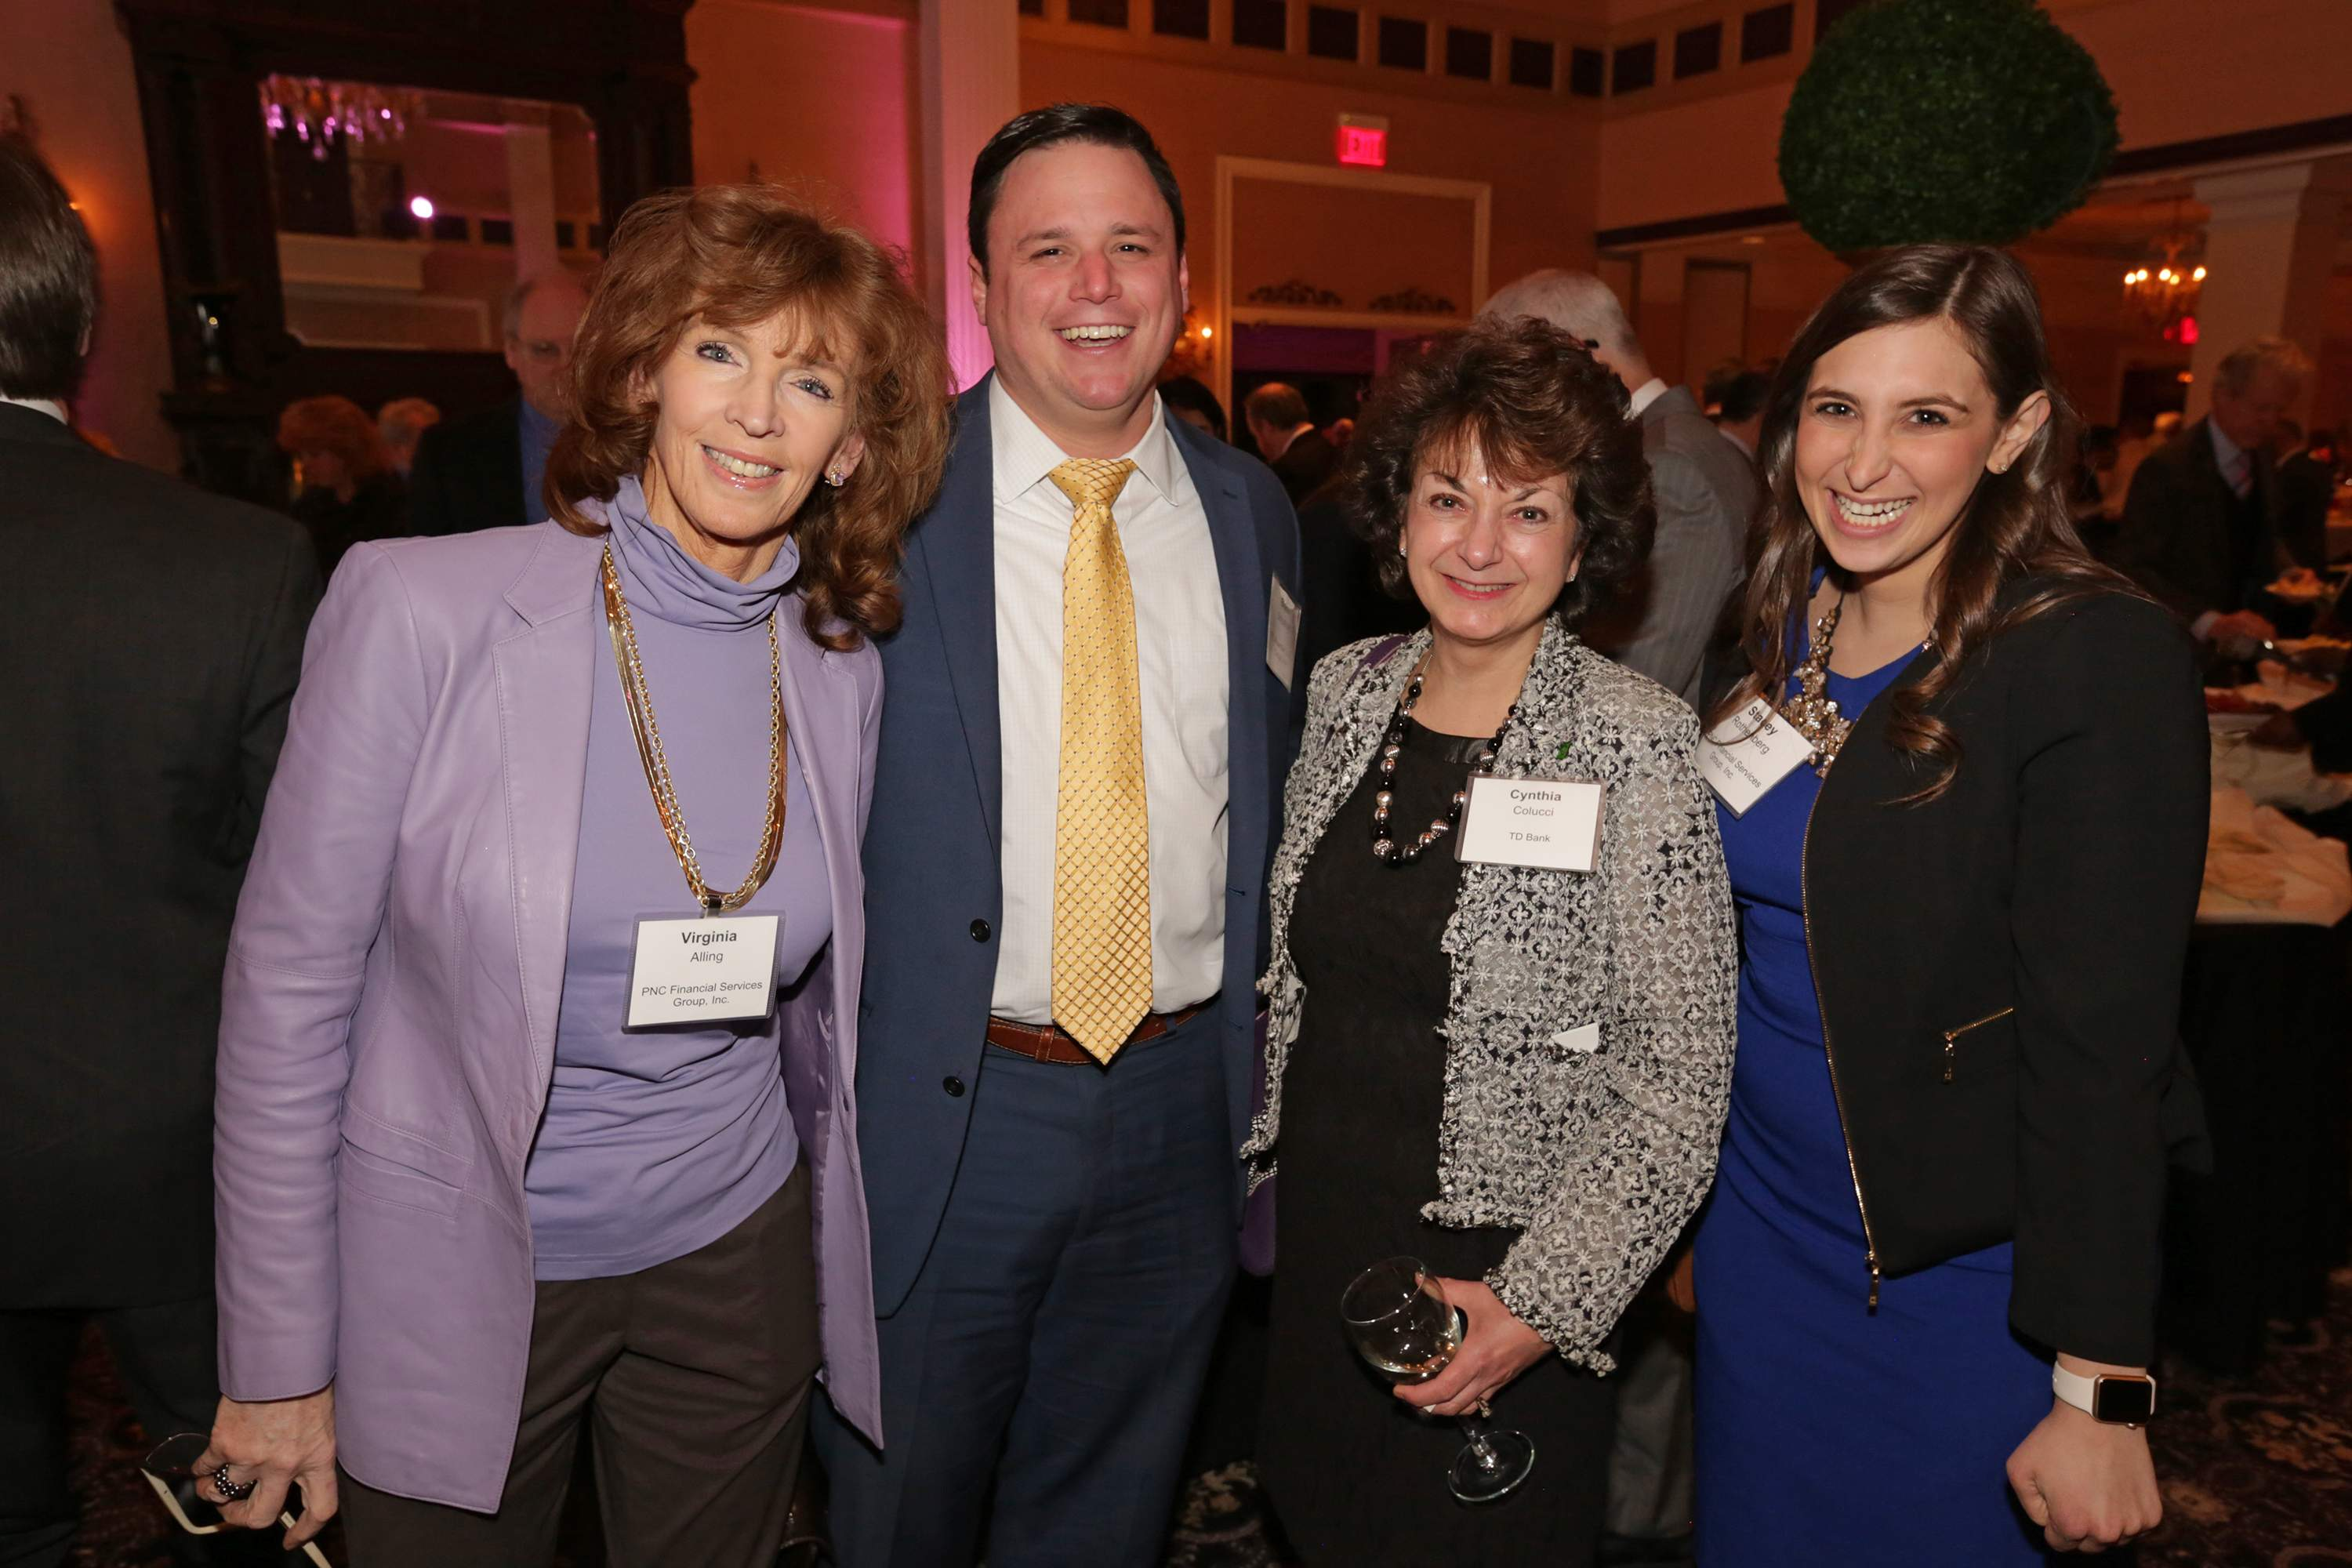 Pictured are Virginia Alling of PNC Financial Services Group Inc., an event attendee, Cynthia Colucci of TD Bank and Stacey Rothenberg of PNC Financial Services Group Inc.